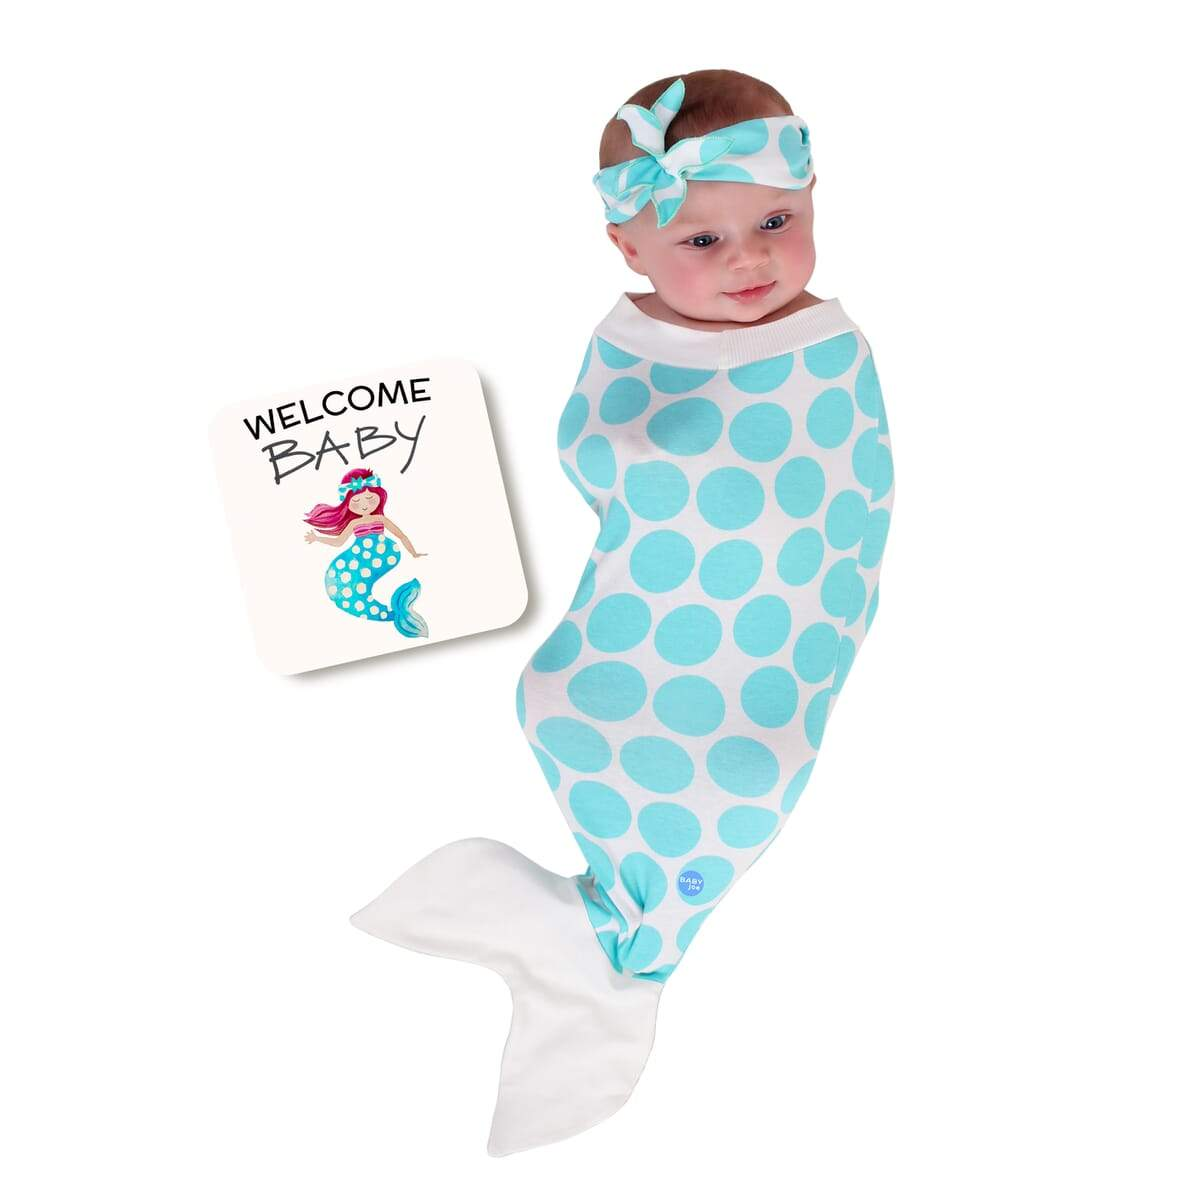 Mermaid Baby Wrap and Book Set